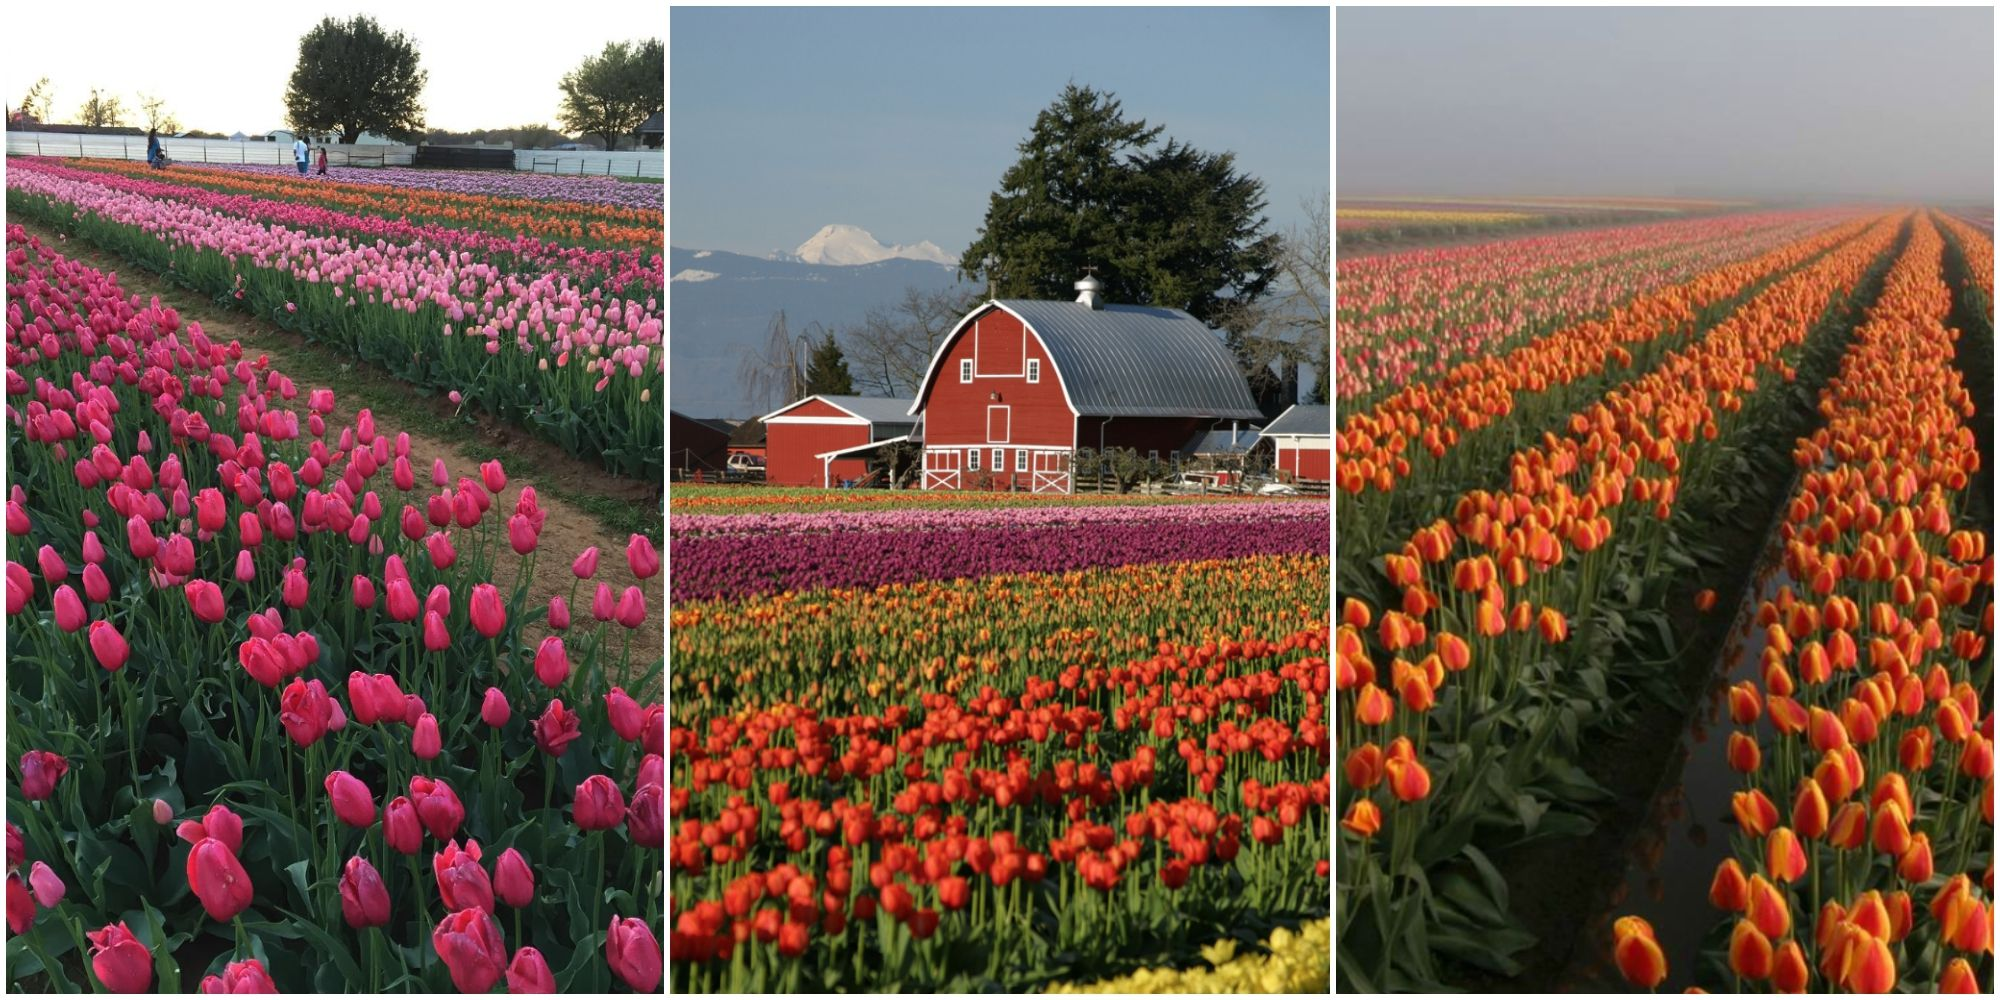 Favorite America How To Visit Tulip Farms Holland Bulb Farms Coupon Holland Bulb Farms Reviews Tulip Farms To Visit houzz-03 Holland Bulb Farms